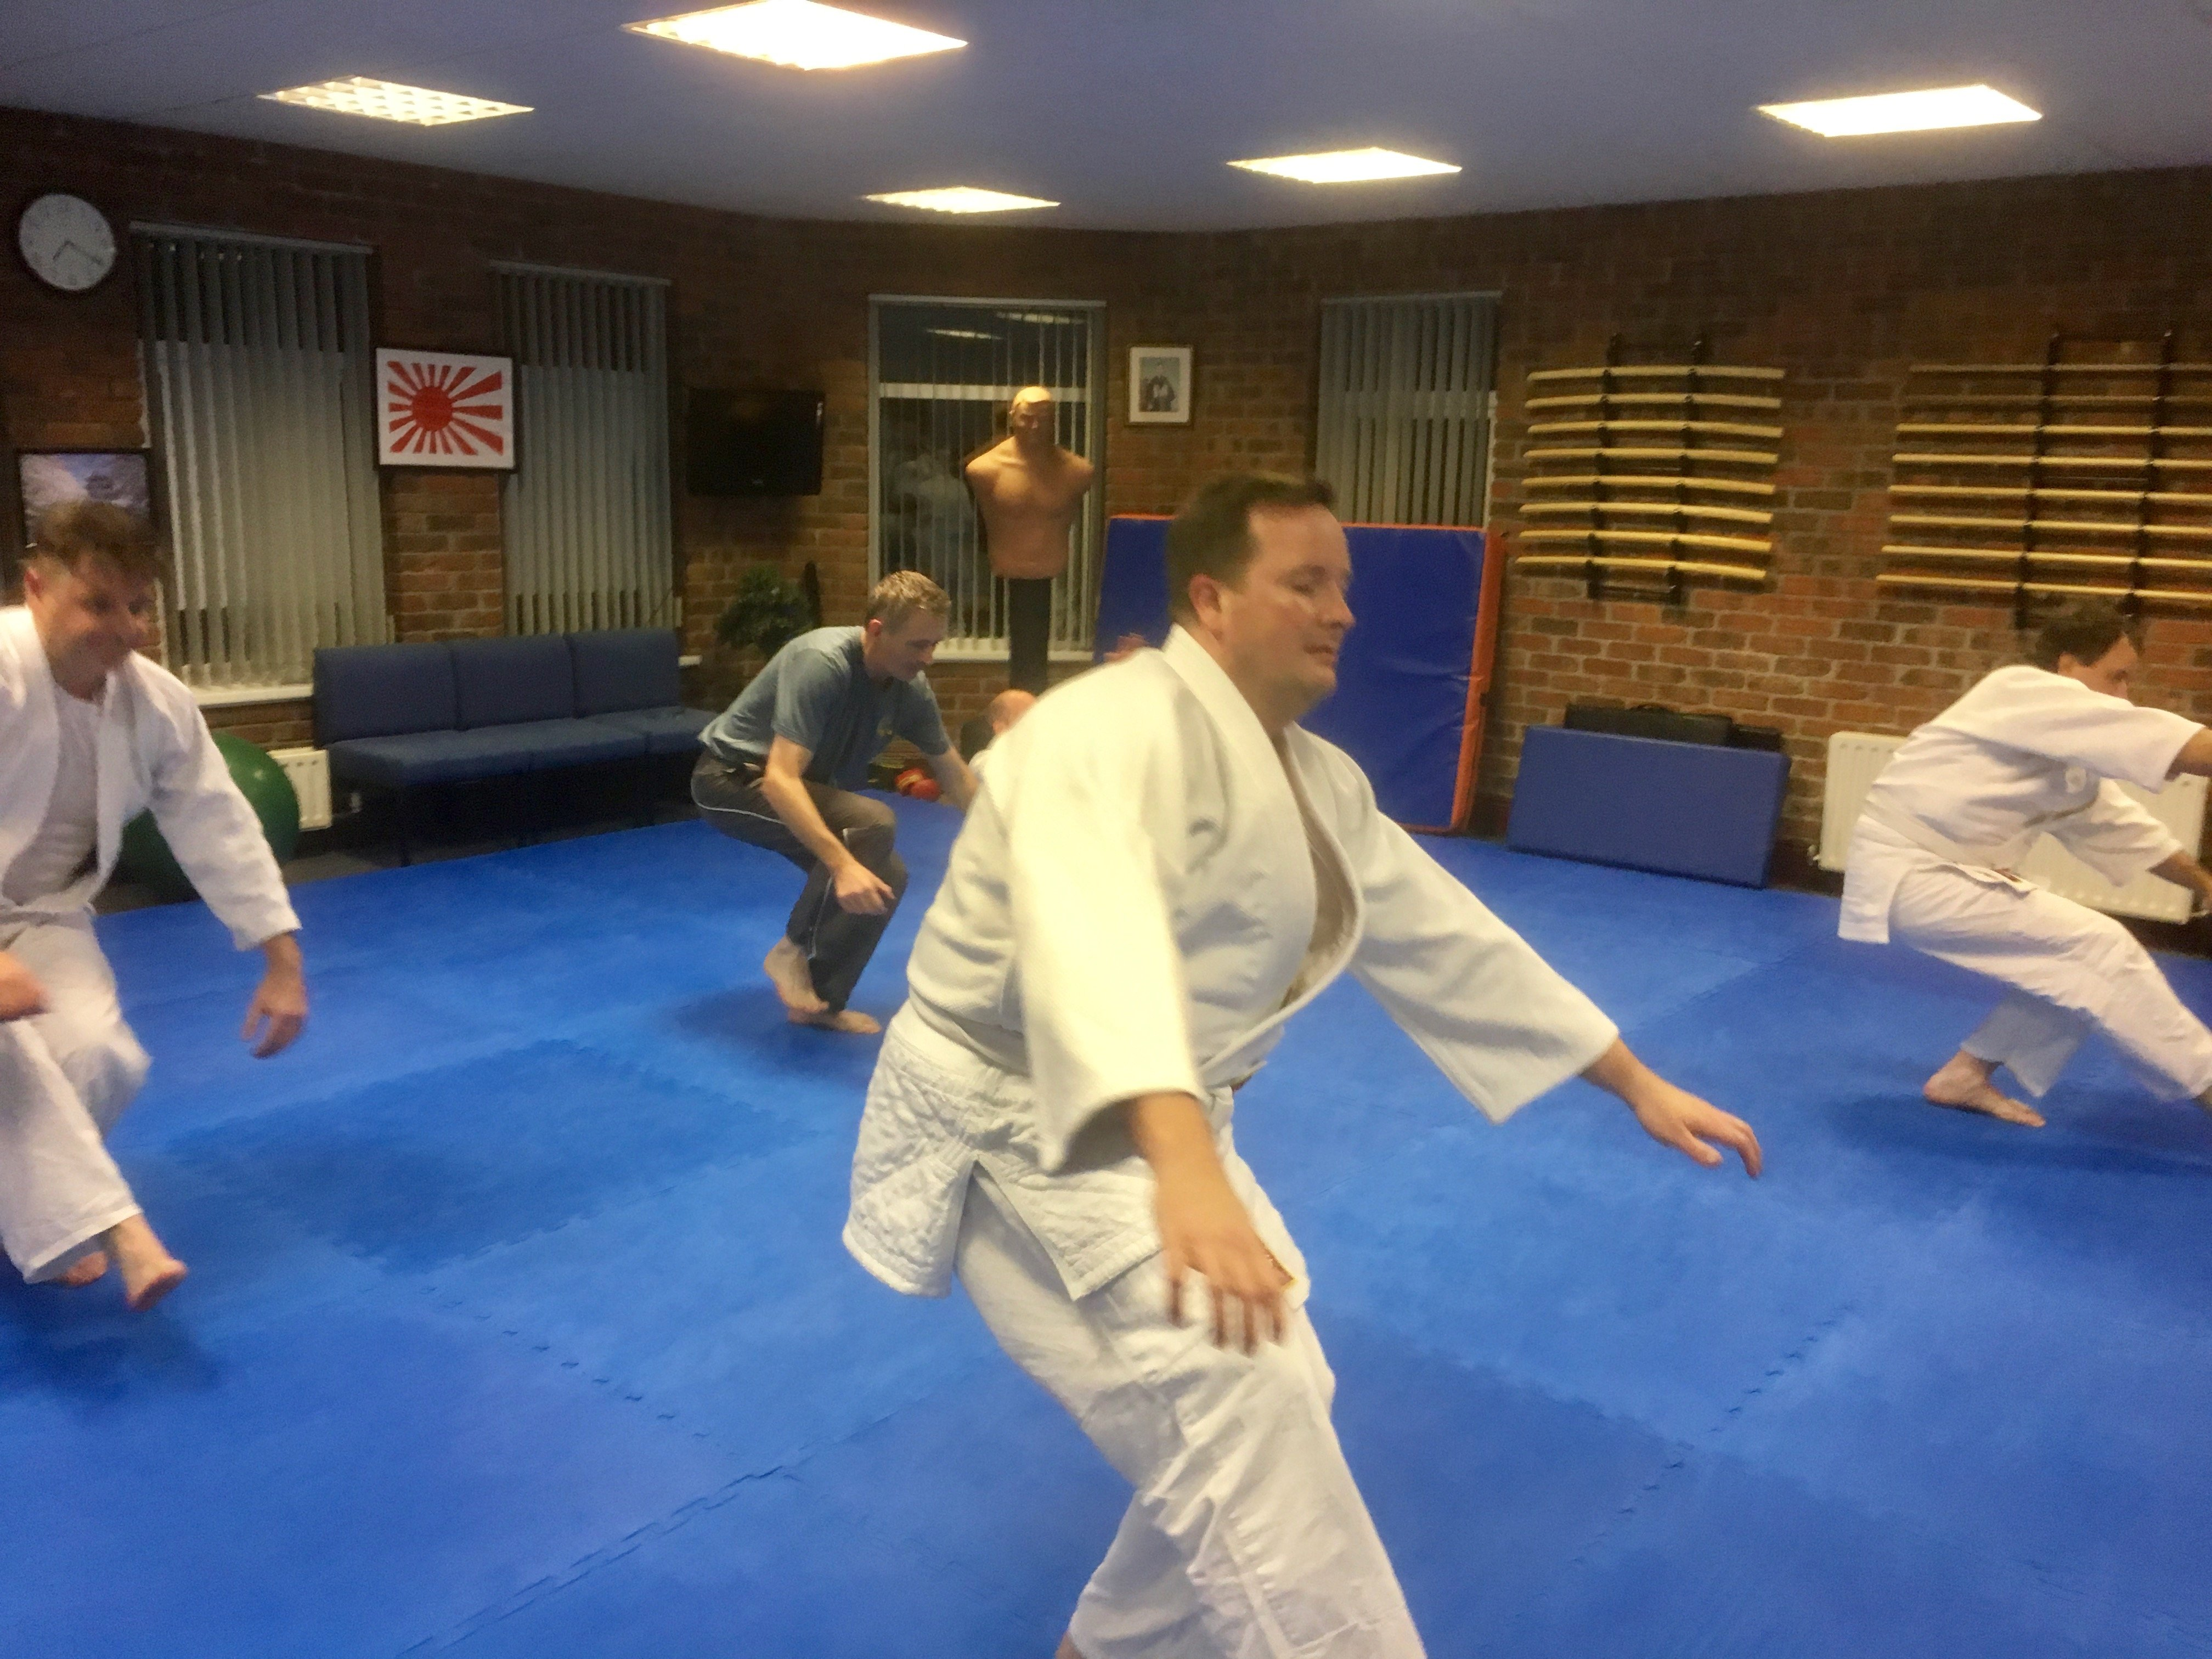 Adult aikido students warming up also falling safely. Martin Acton's Aikido Institute